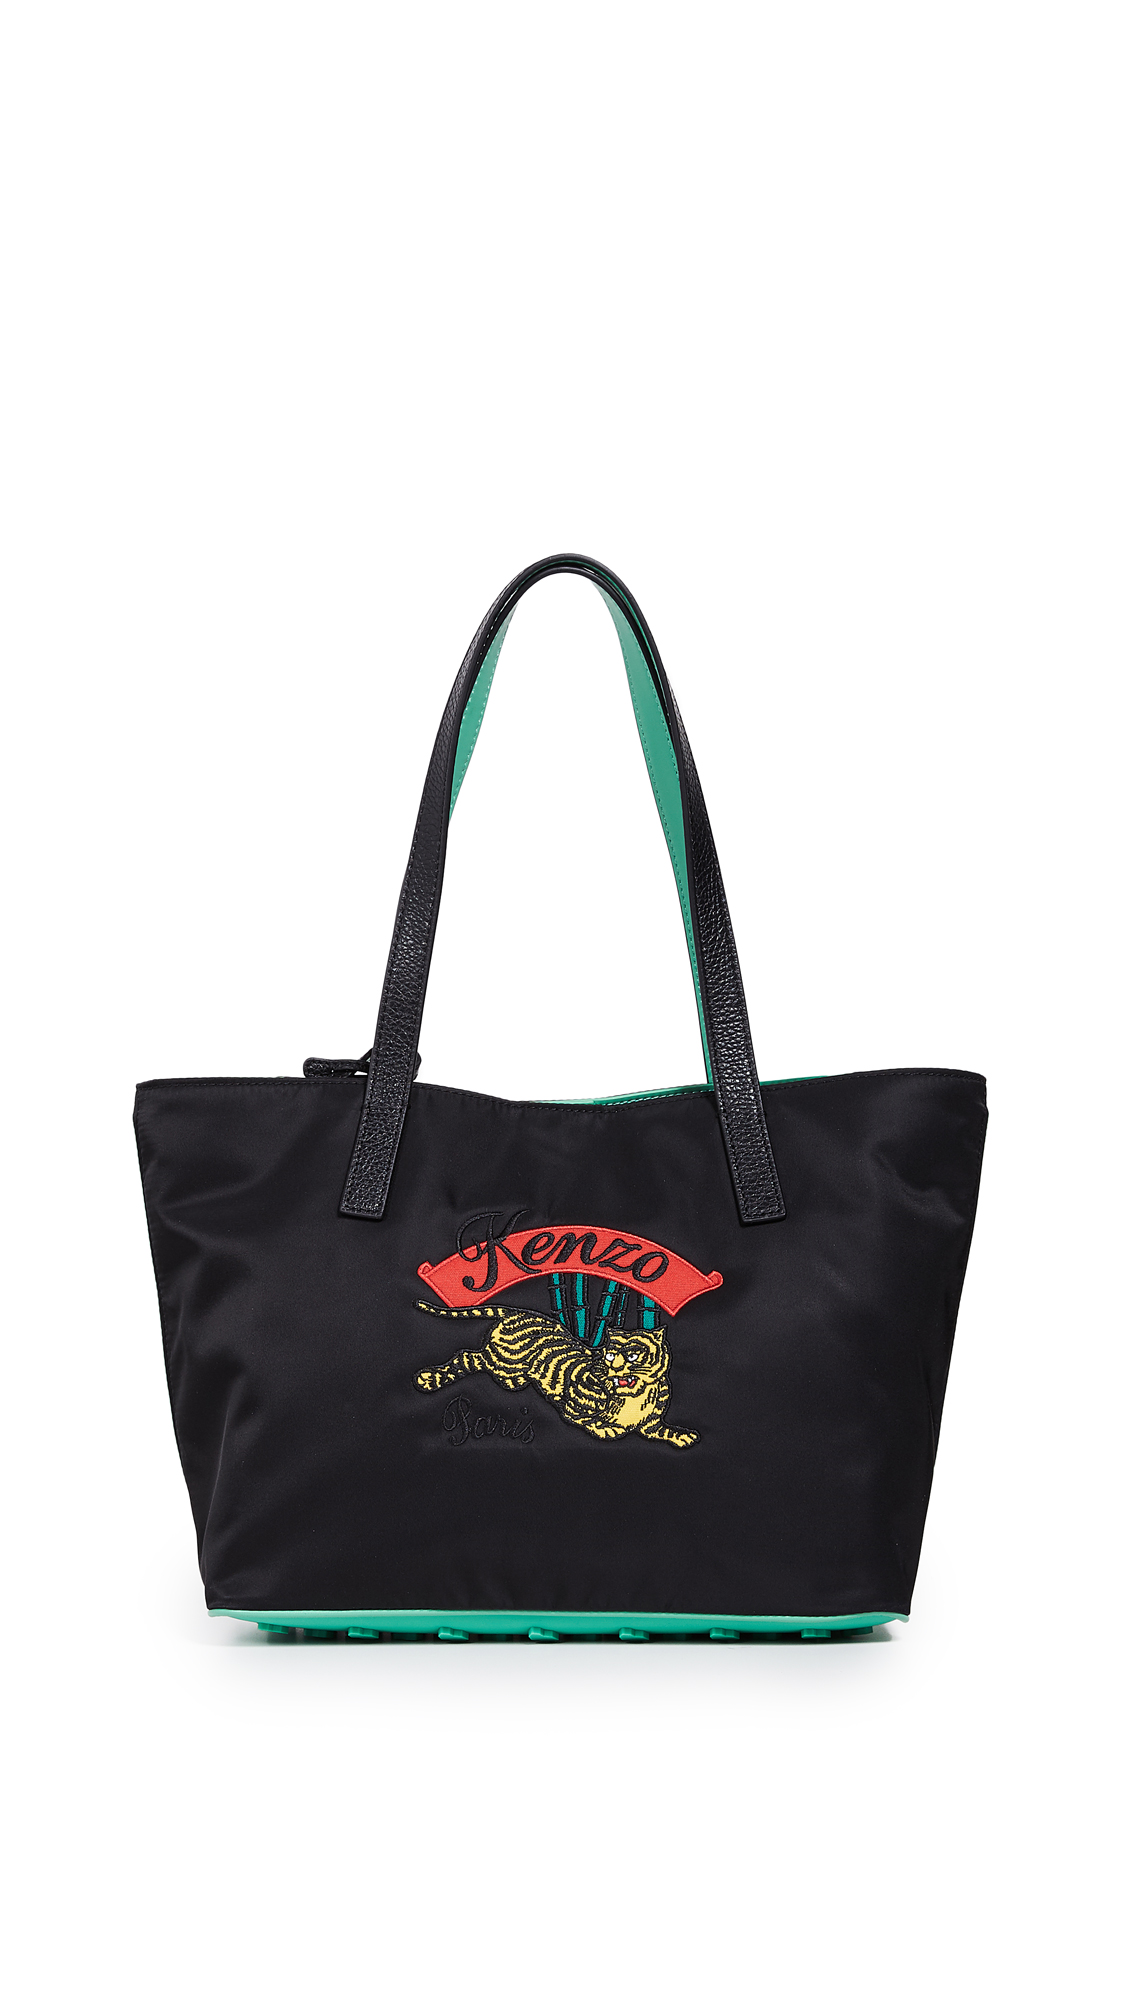 Jumping Tiger Small Tote in Black